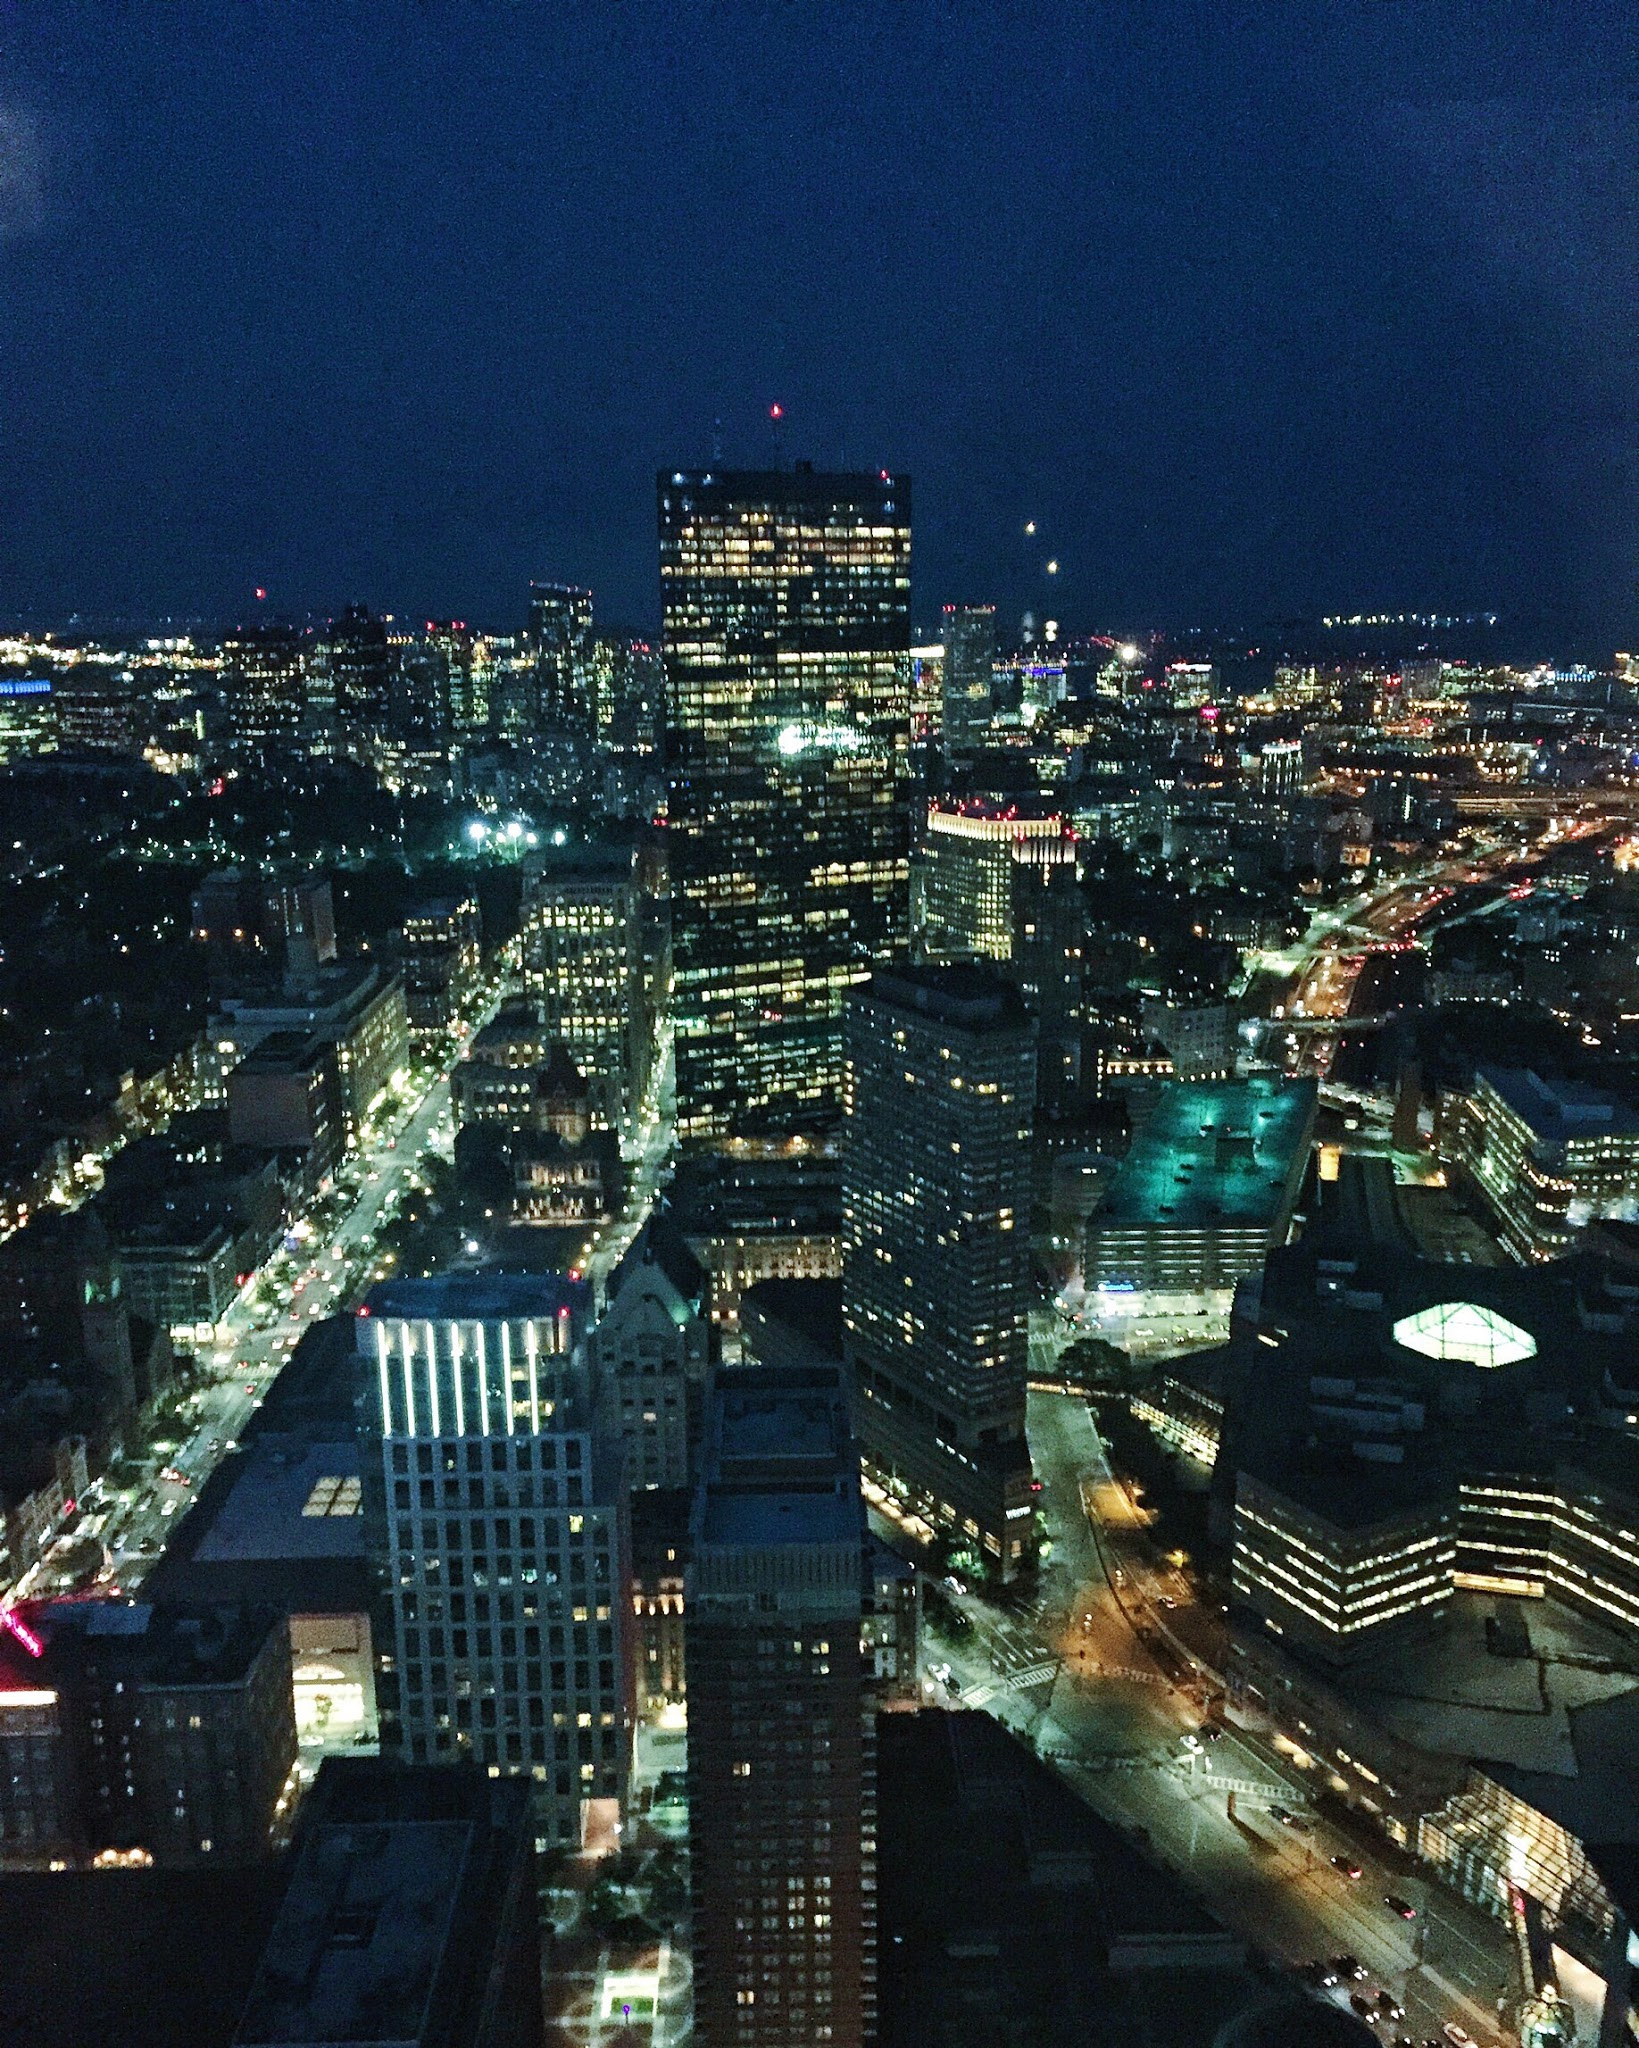 I checked the time the sun set in Boston so we could get both the sunset and the night views!